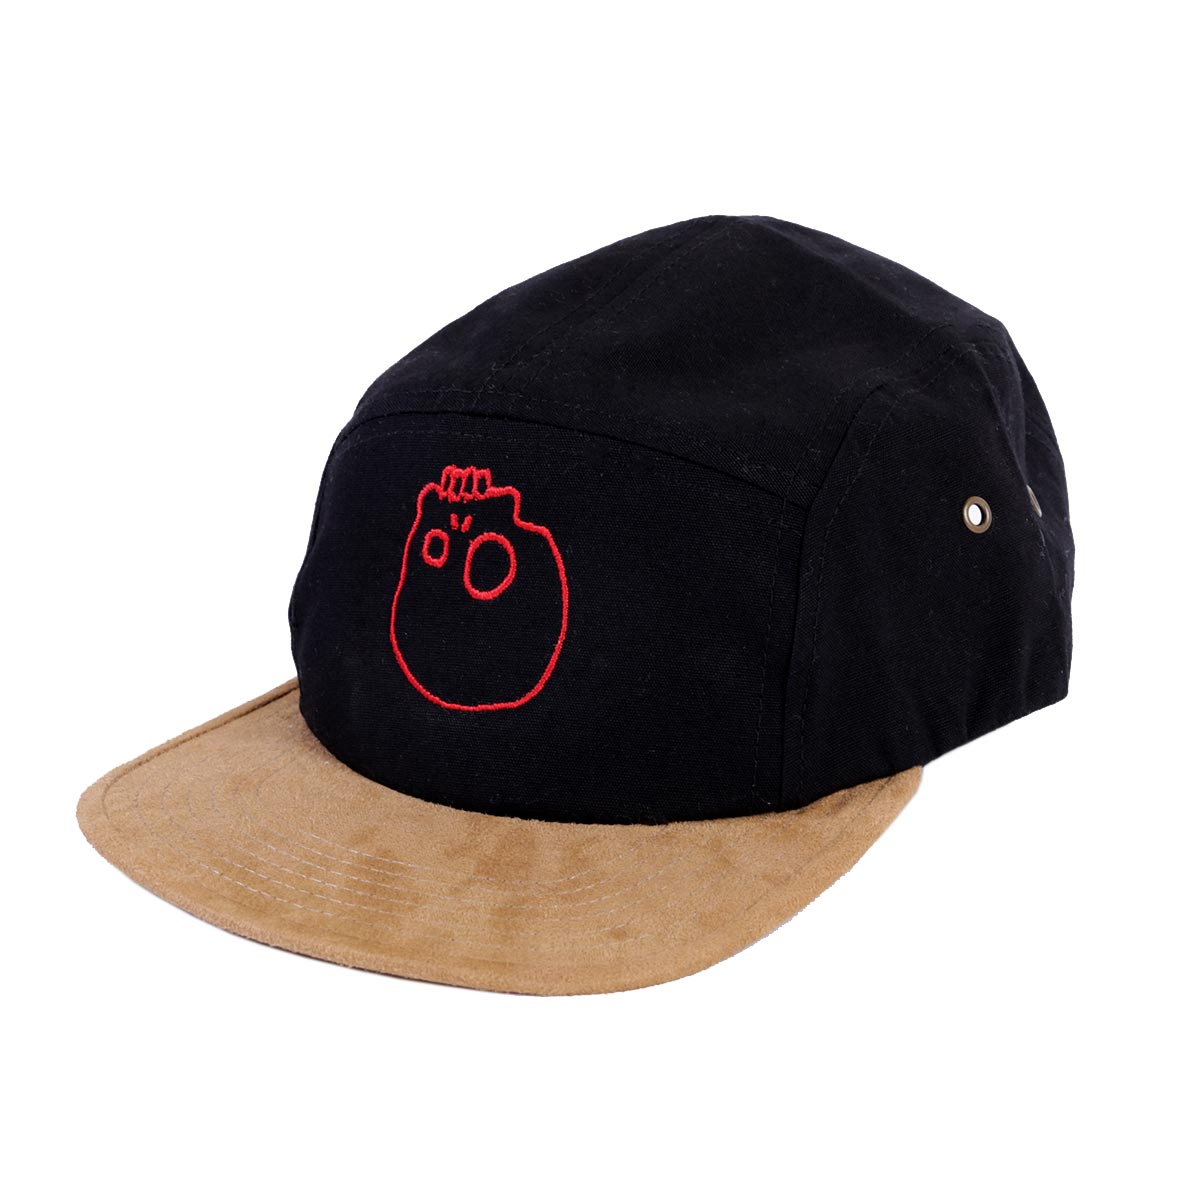 Beechfield Suede Peak 5 Panel Caps